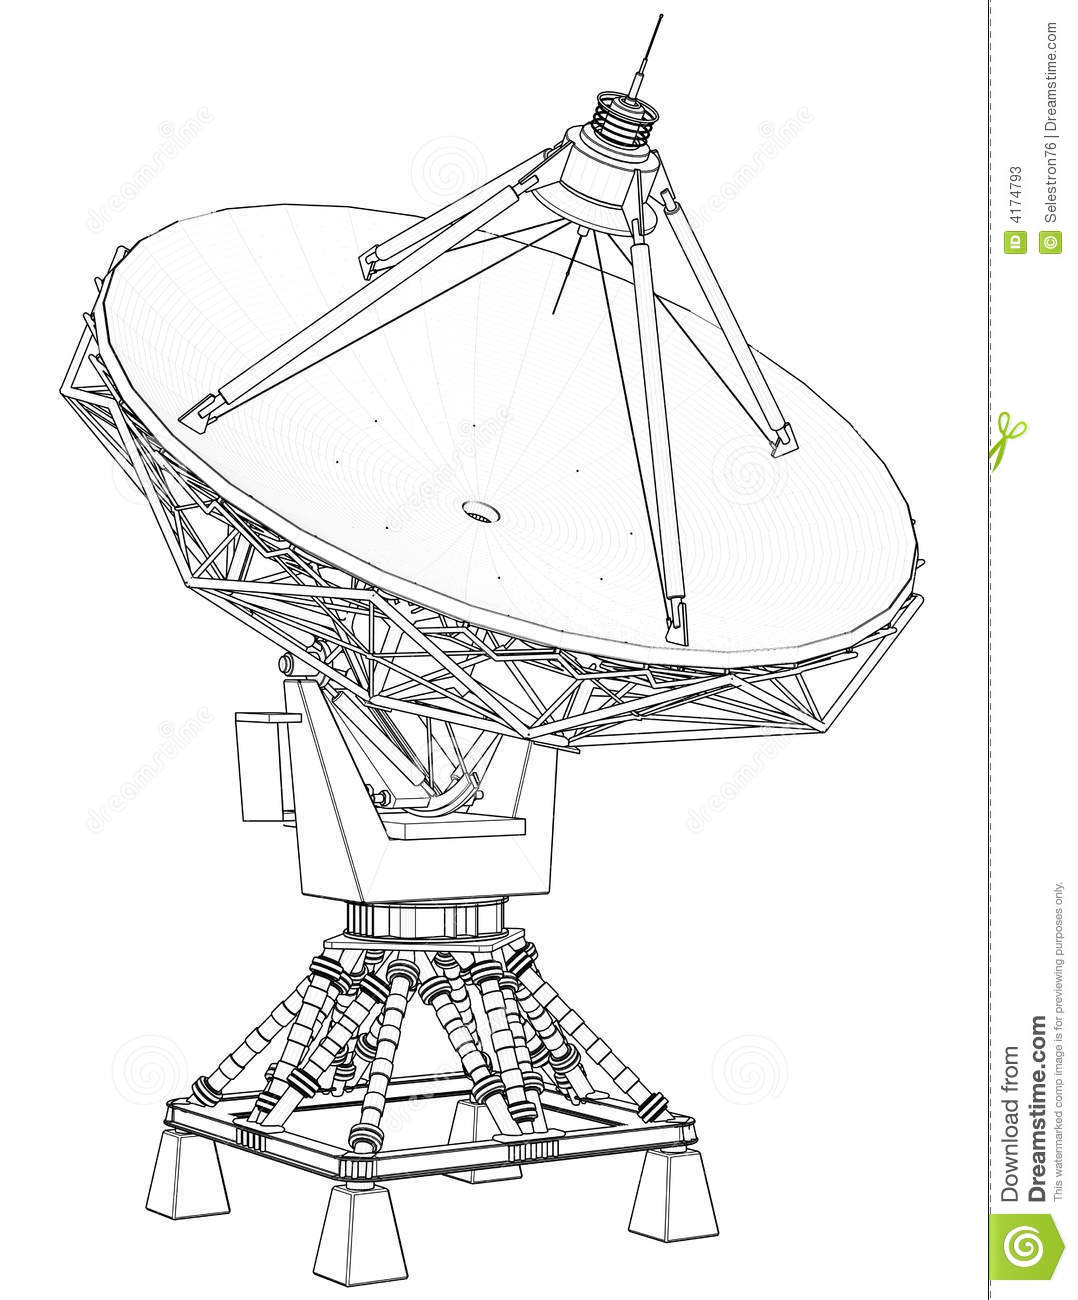 Doppler Radar Technical Draw Stock Illustration